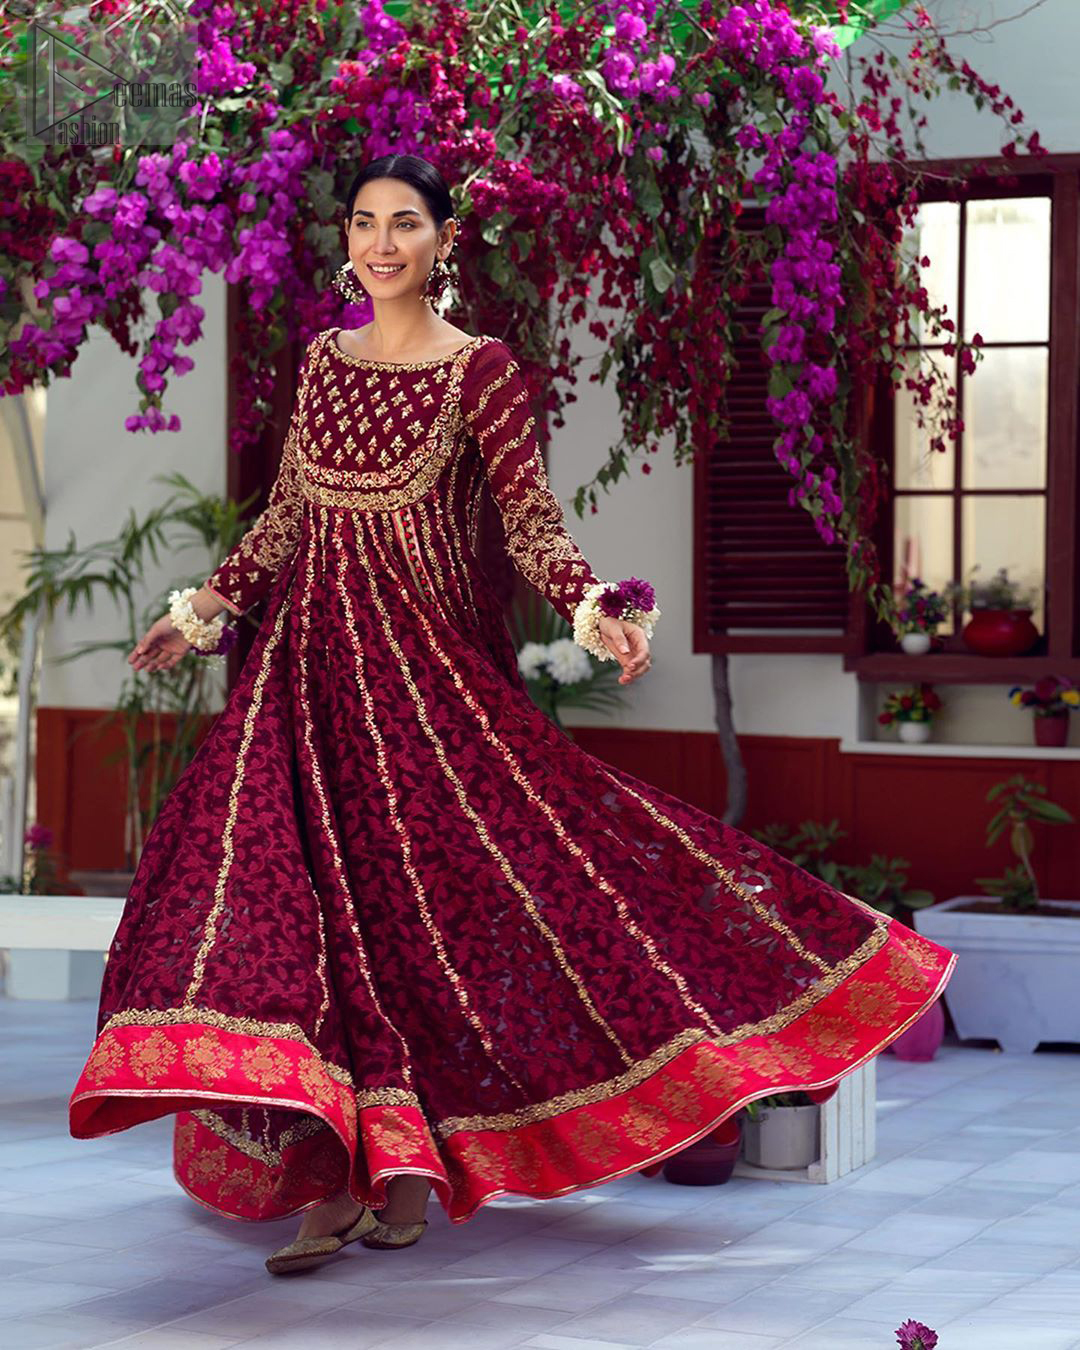 The perfect combination of tradition and class. With a lot of attention to detail, the intricate zardozi work with using glass beading and threads makes the bodice look like nothing but a dream. The tiny floral motifs are also scattered on the bodice. This mehndi outfit is ornamented with vertical embroidered lines and coral applique at the bottom. It comprises with maroon capri pants and coral self fabric dupattta. You are all set to make a lasting impact with the divine royalty of this dress.